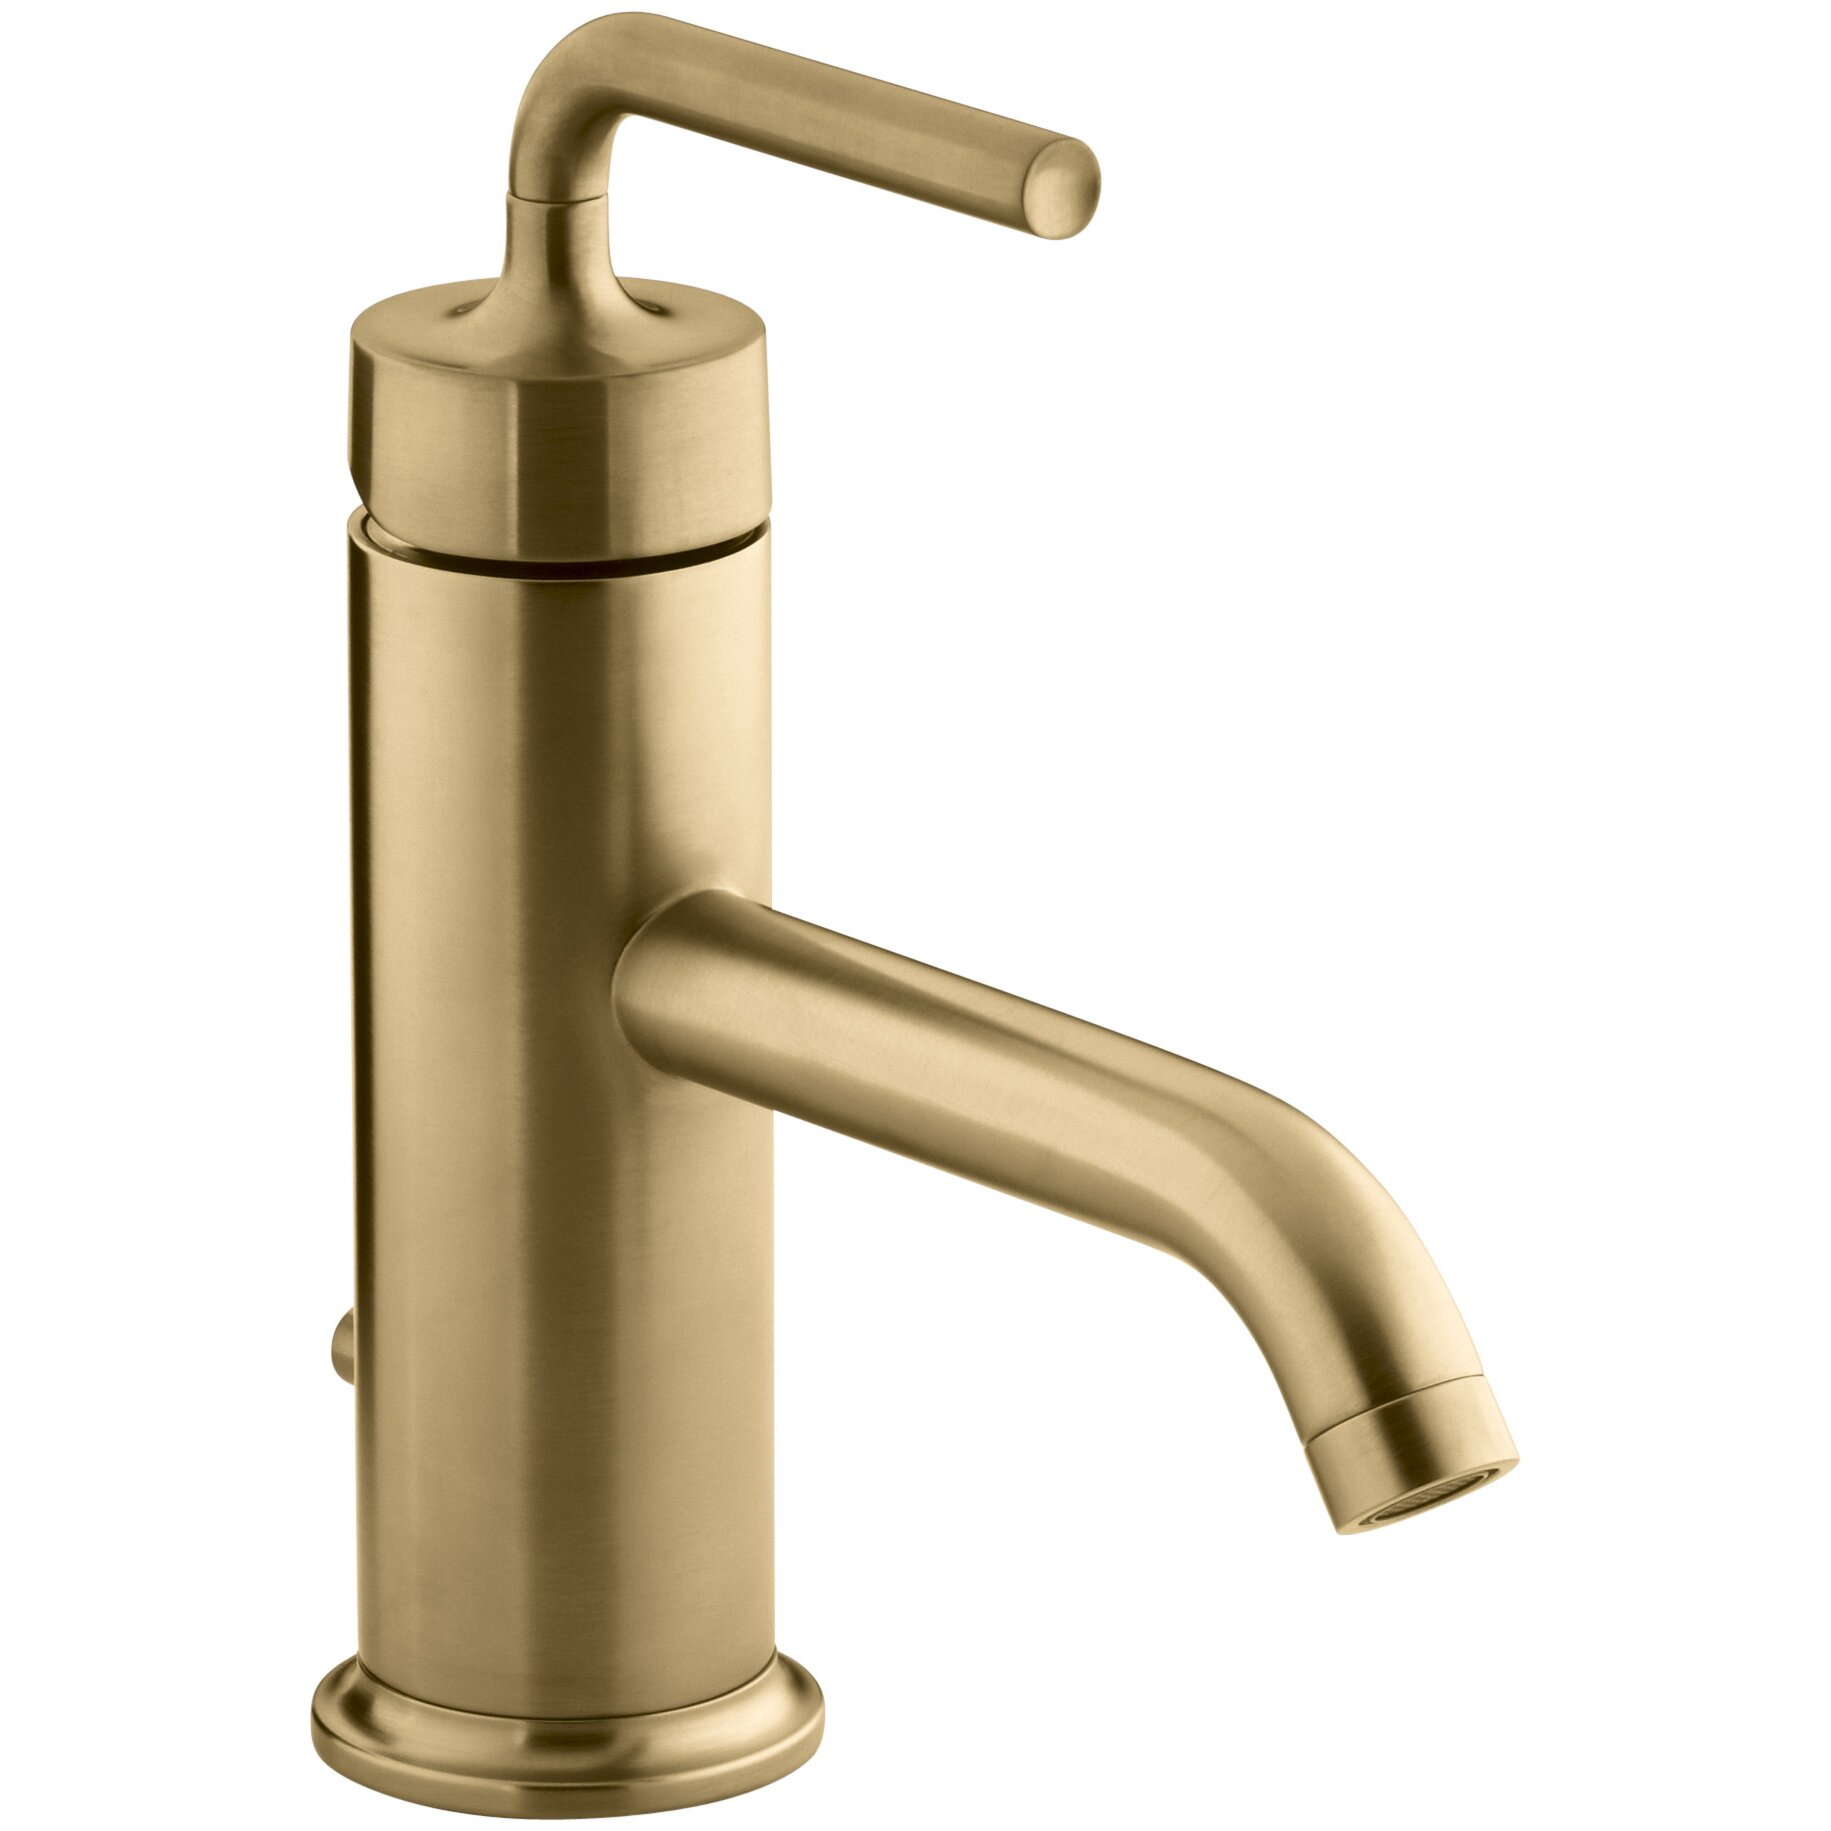 Bathroom Sink Faucets: Kohler Purist Single-Hole Bathroom Sink Faucet With Straight Lever Handle & Reviews